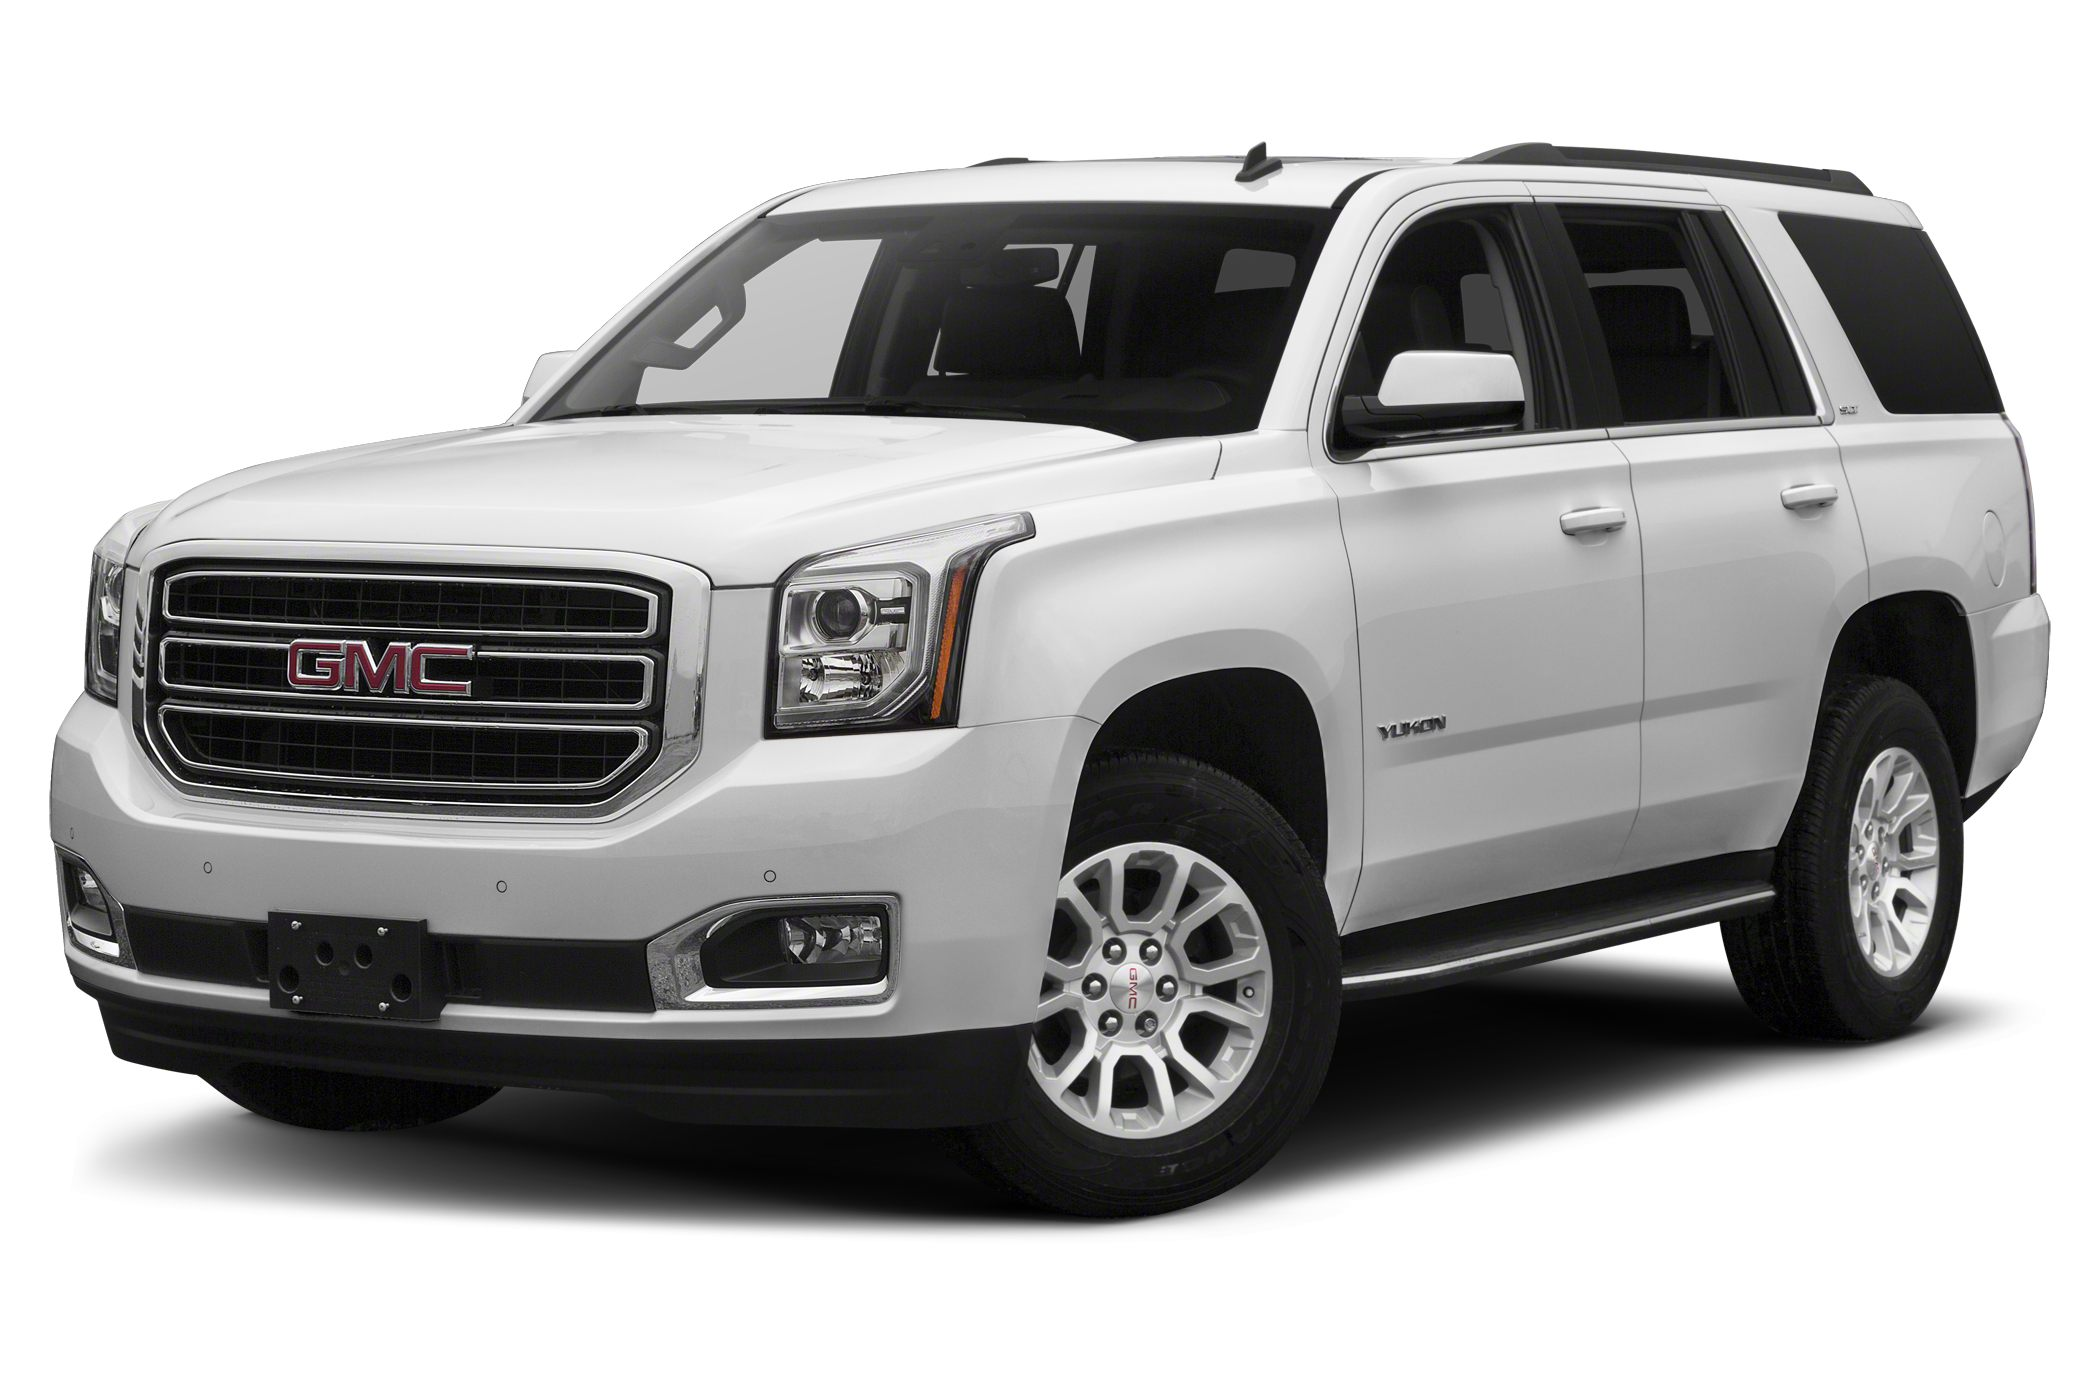 2015 GMC Yukon SLT SUV for sale in Gaithersburg for $64,520 with 250 miles.